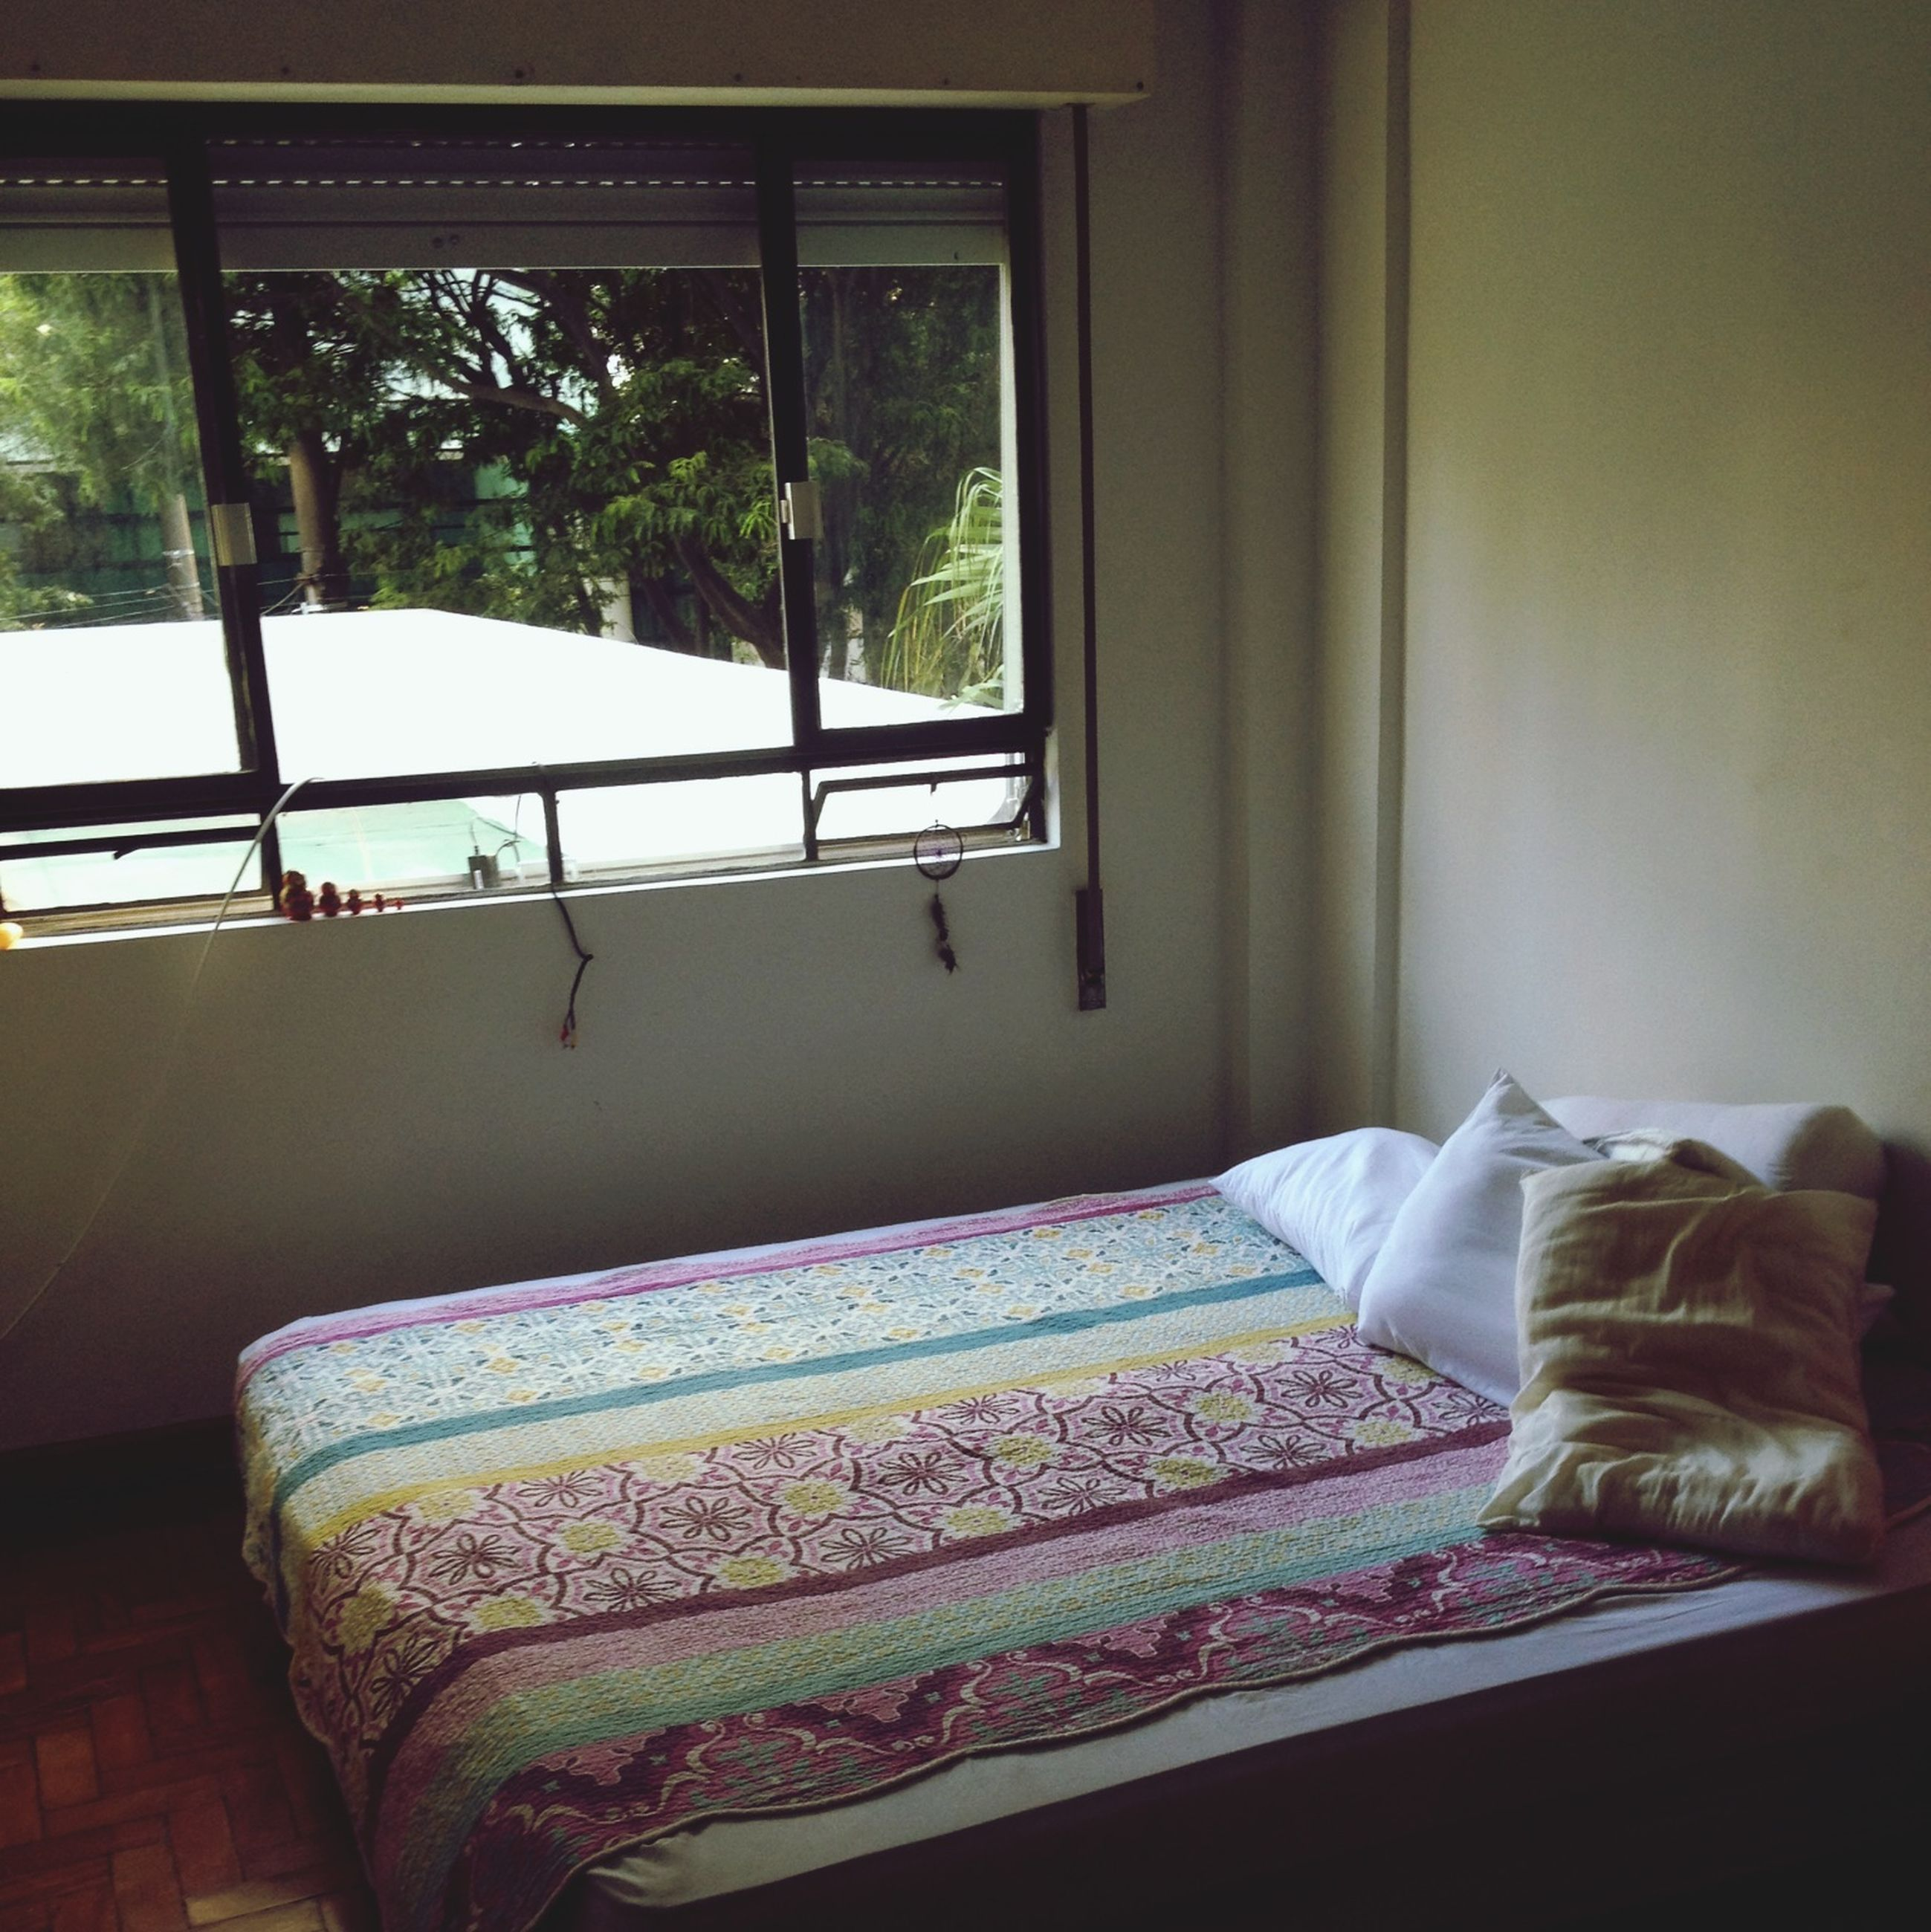 indoors, home interior, window, table, chair, bed, absence, domestic room, bedroom, curtain, empty, living room, sofa, furniture, house, cushion, domestic life, home showcase interior, relaxation, pillow